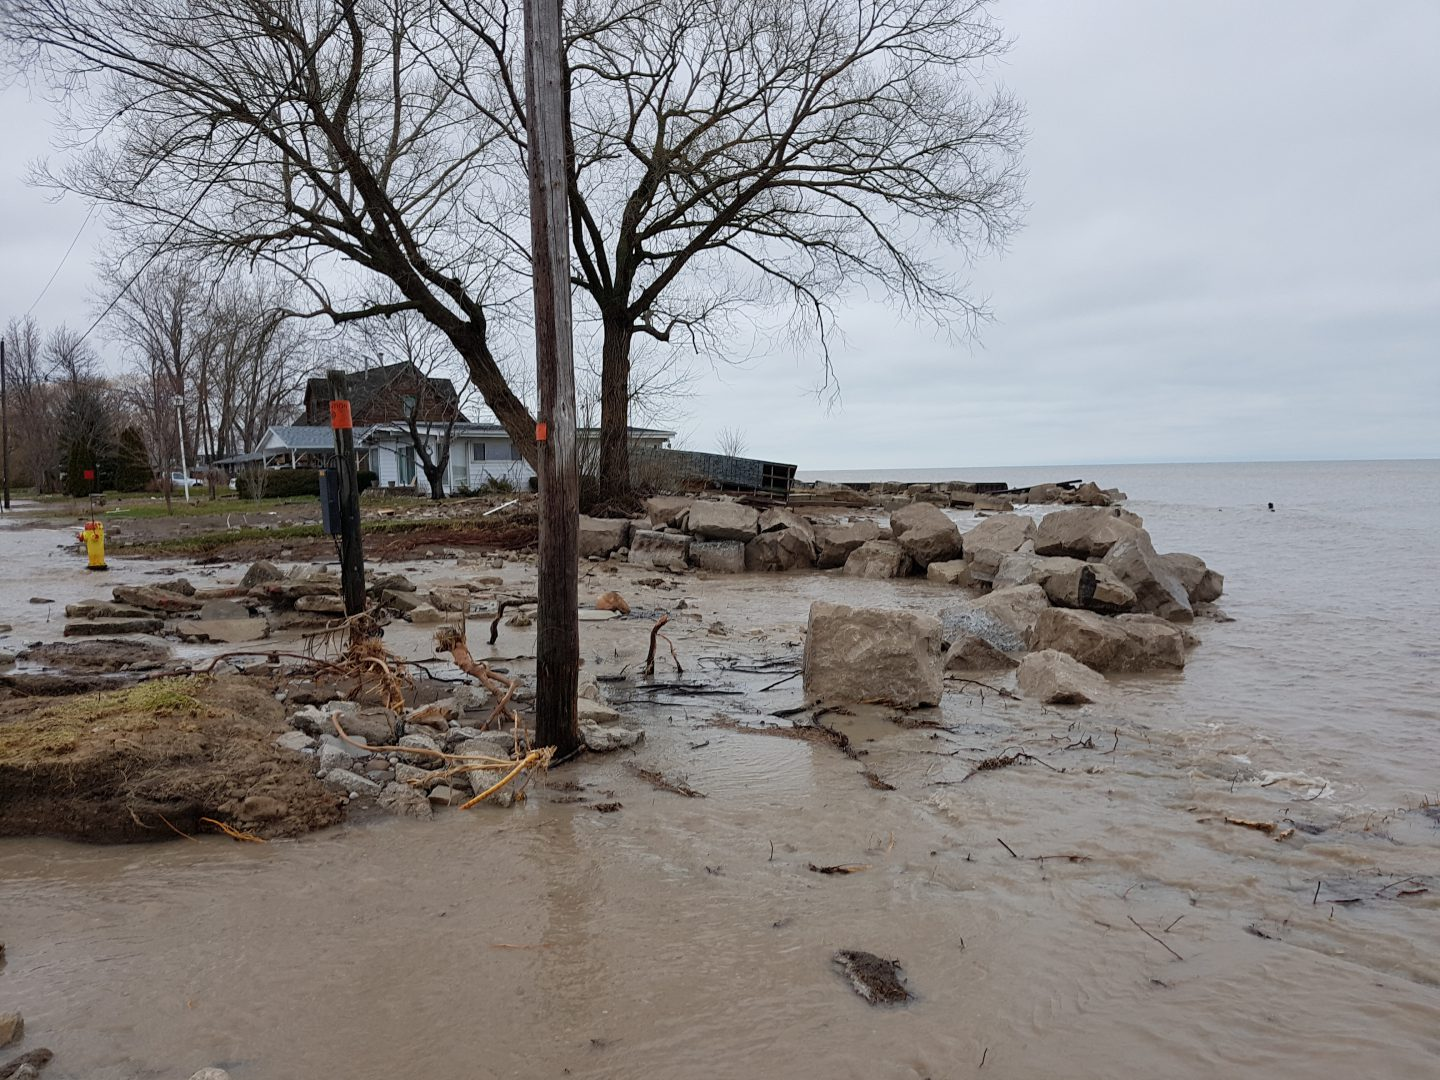 Flooded area near lakeshore, rocks and branches thrown about